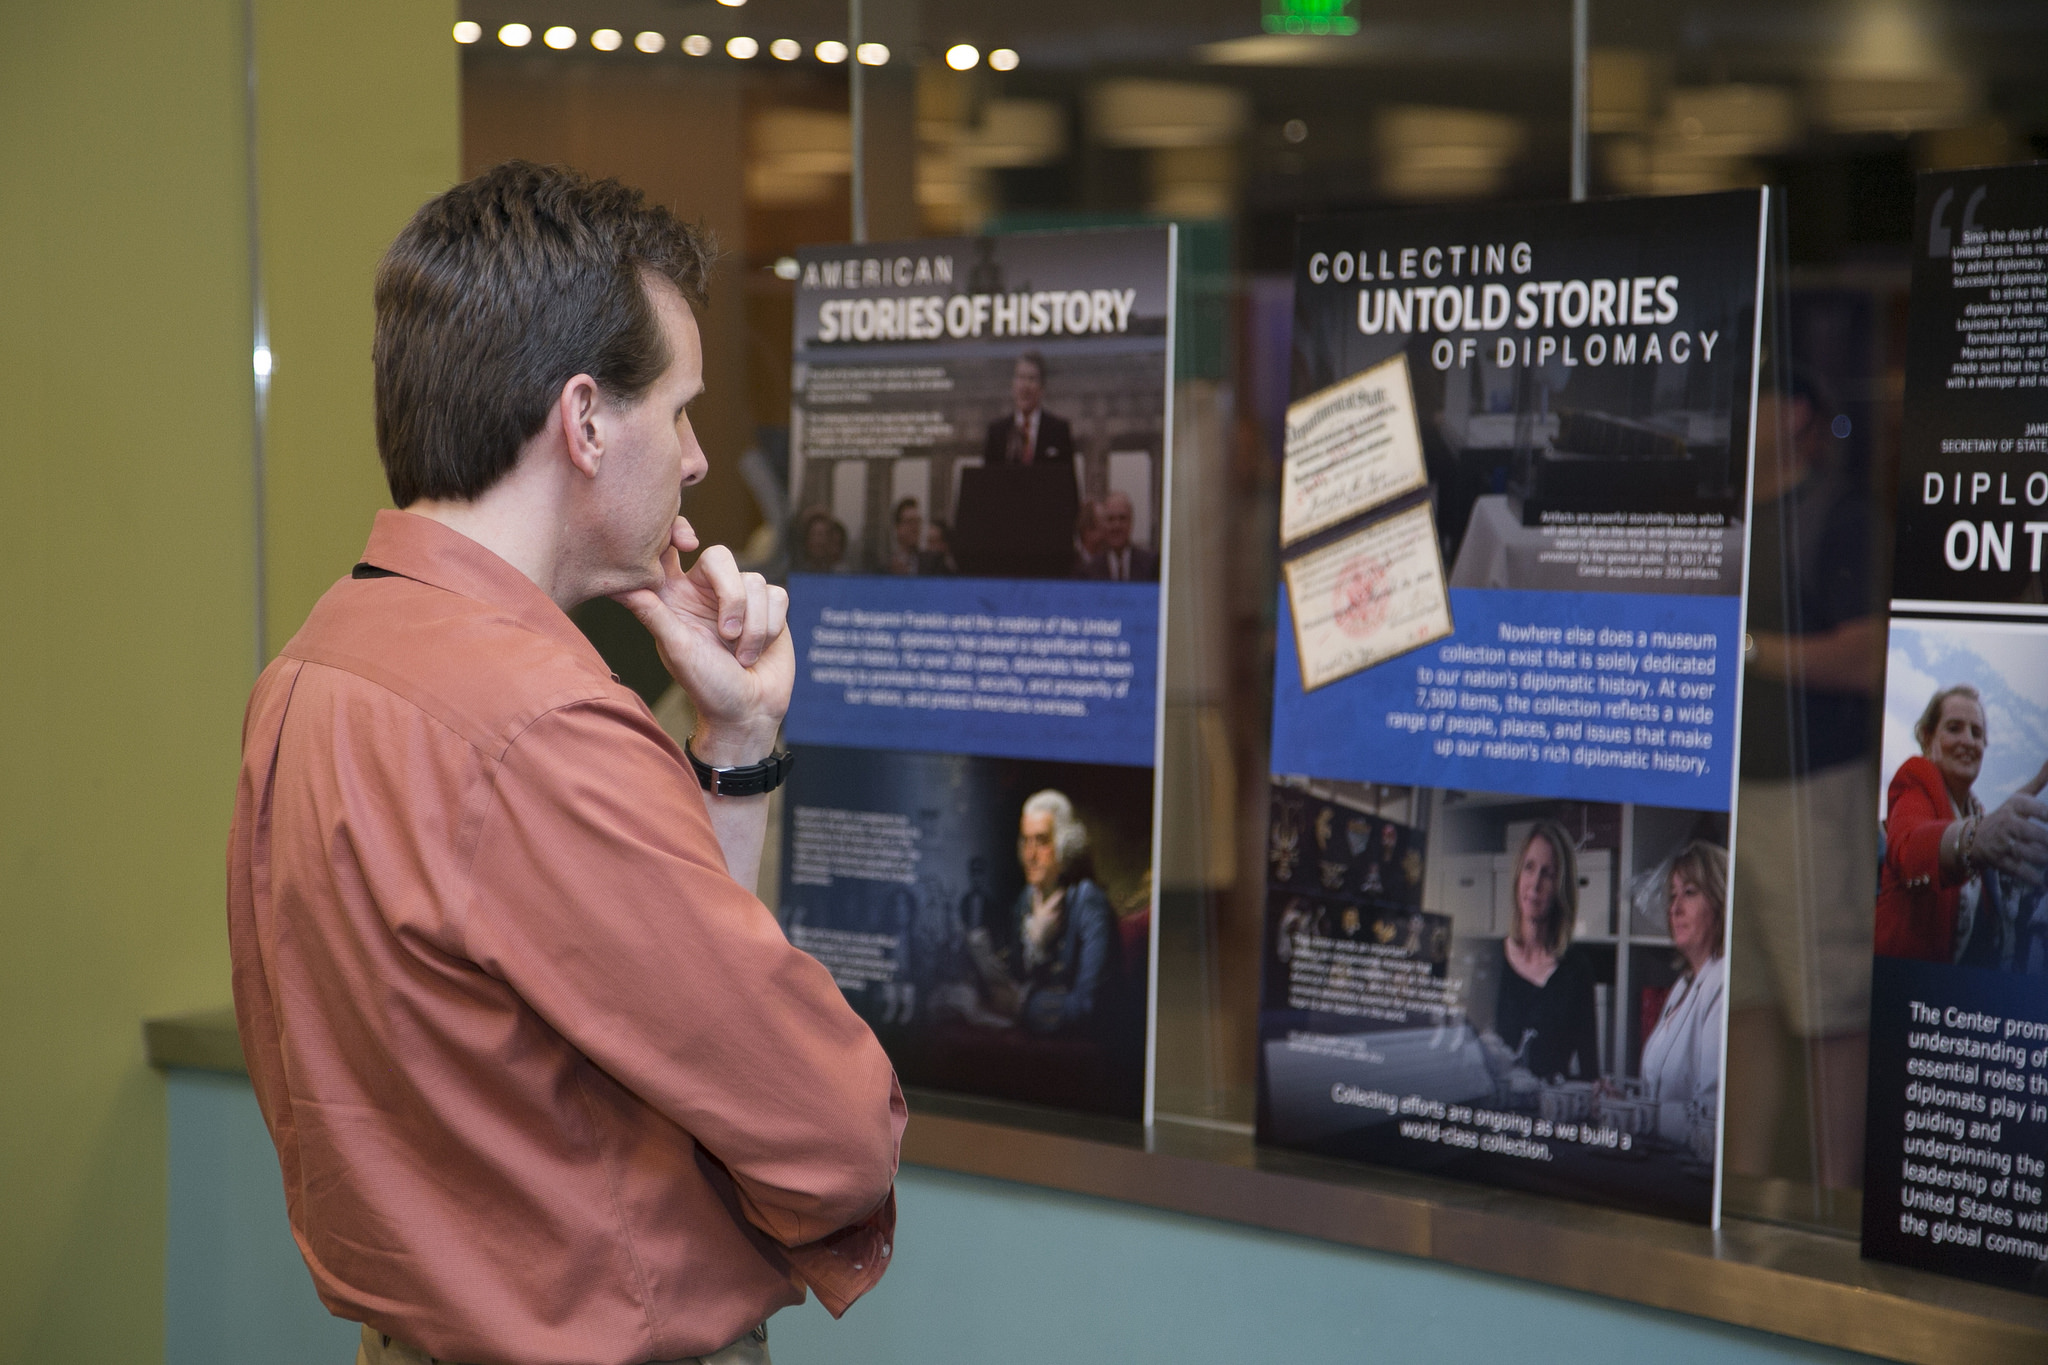 A man observes the posters of the Diplomacy Center